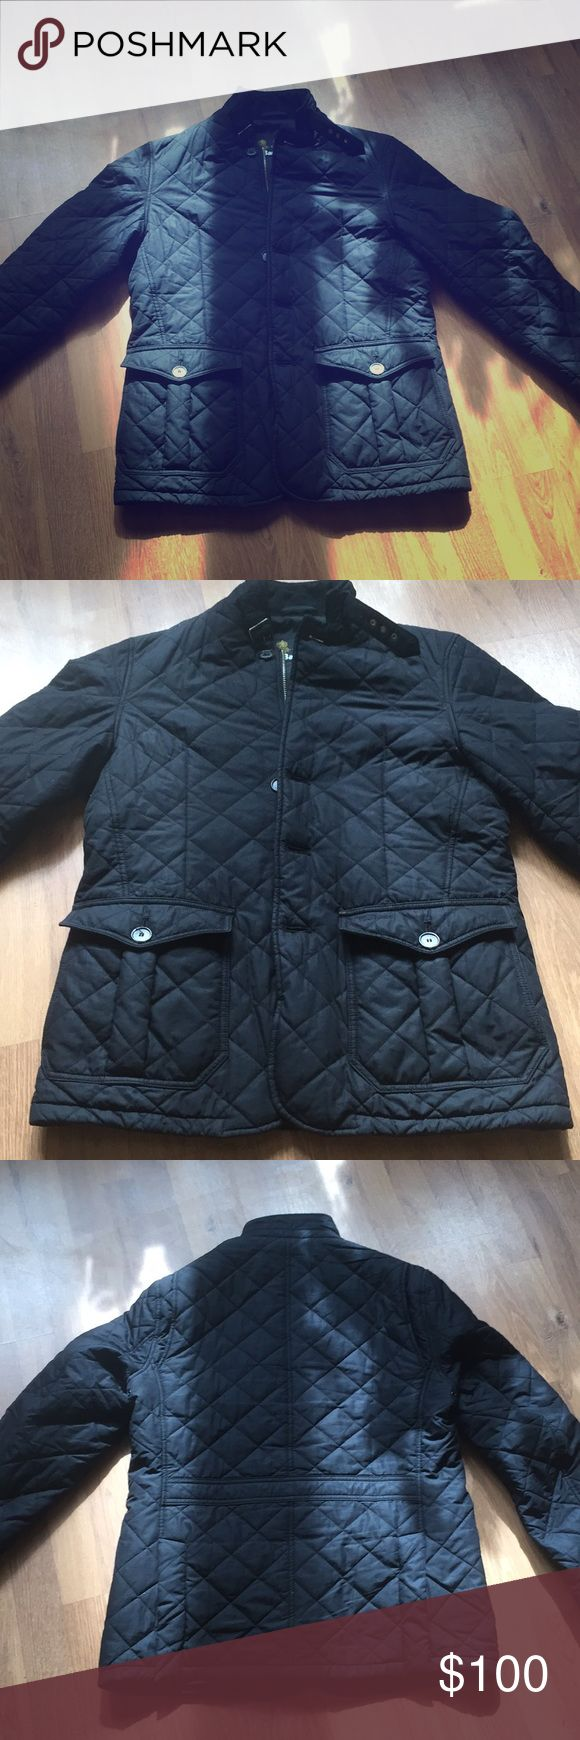 Barbour men's medium lutz jacket This jacket is in good condition. There is one small pull/hole in the outside of the jacket (shown in pics). Barbour Jackets & Coats